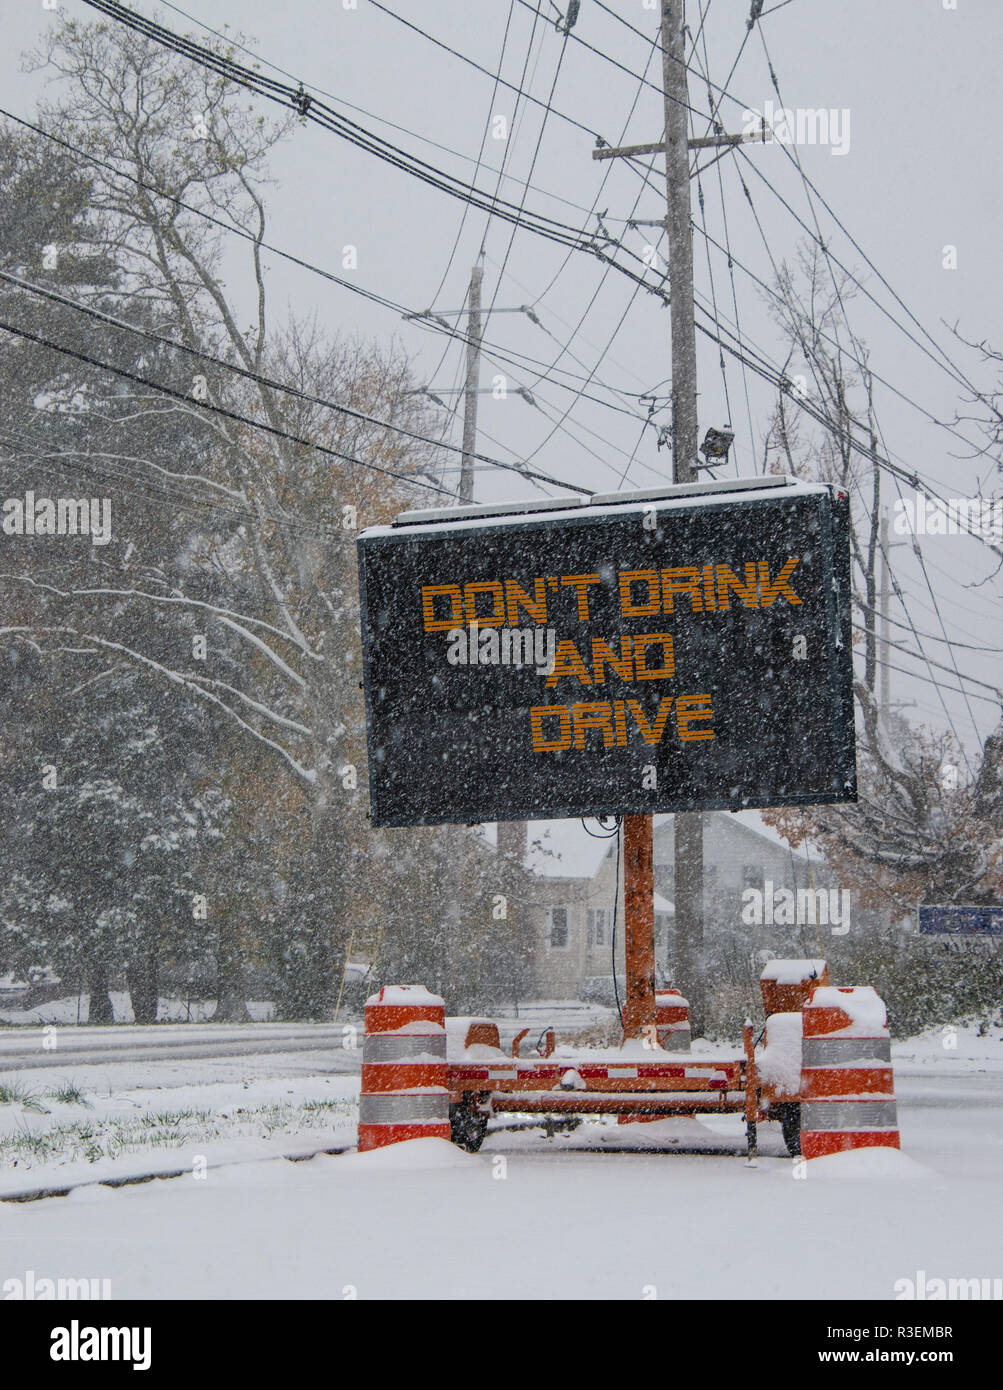 Electric road traffic mobile sign by the side of a snow covered road with snow falling that says, Don't Drink and Drive - Stock Image